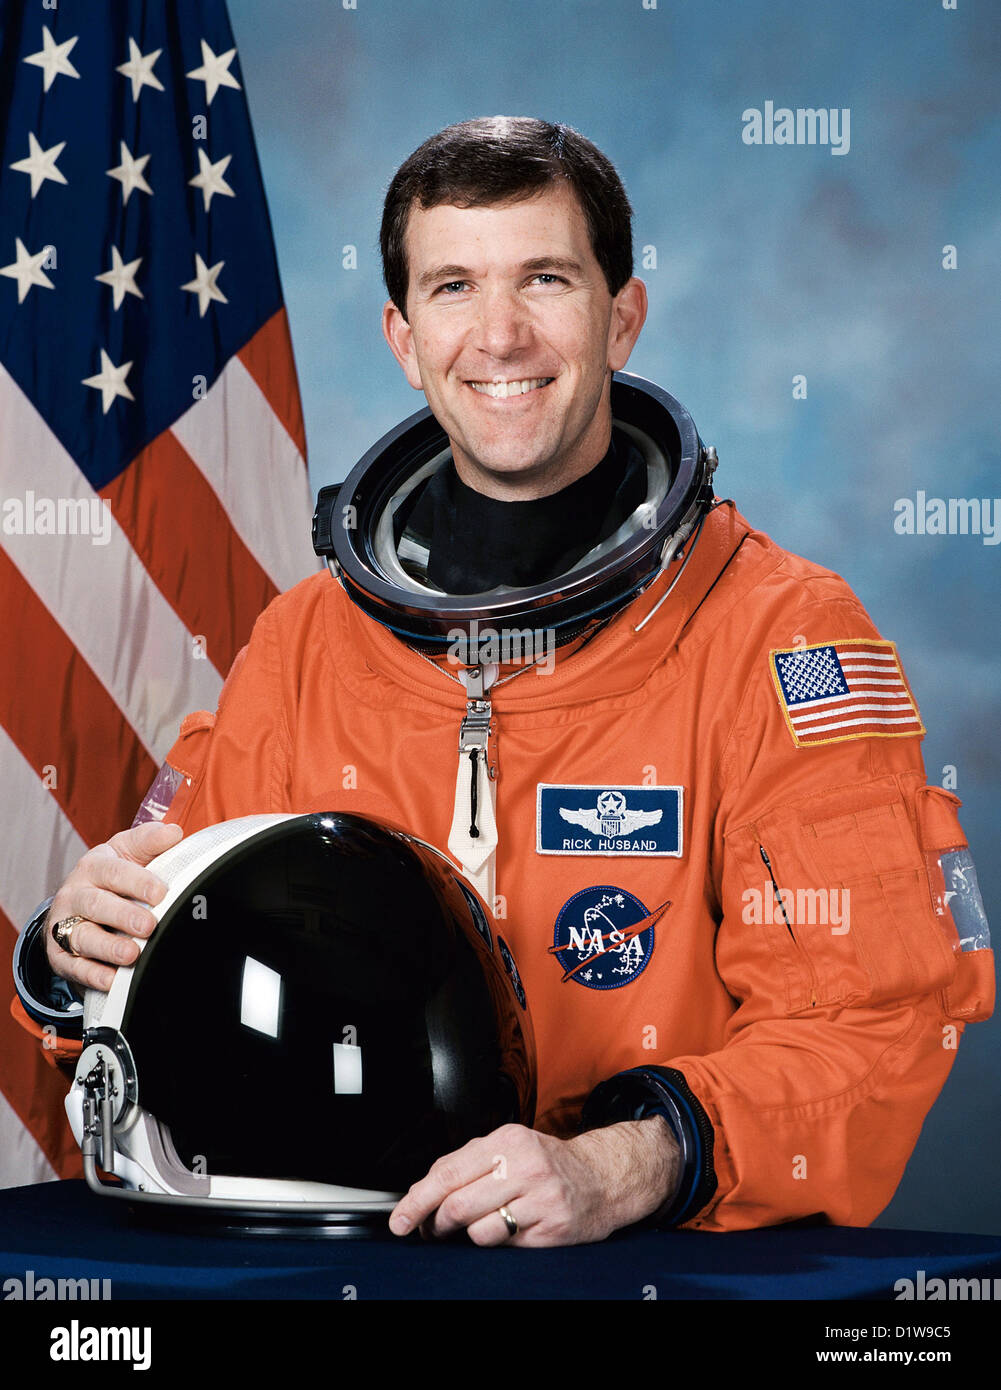 Richard Husband, American astronaut who died during the failed re-entry of Space Shuttle Columbia. - Stock Image